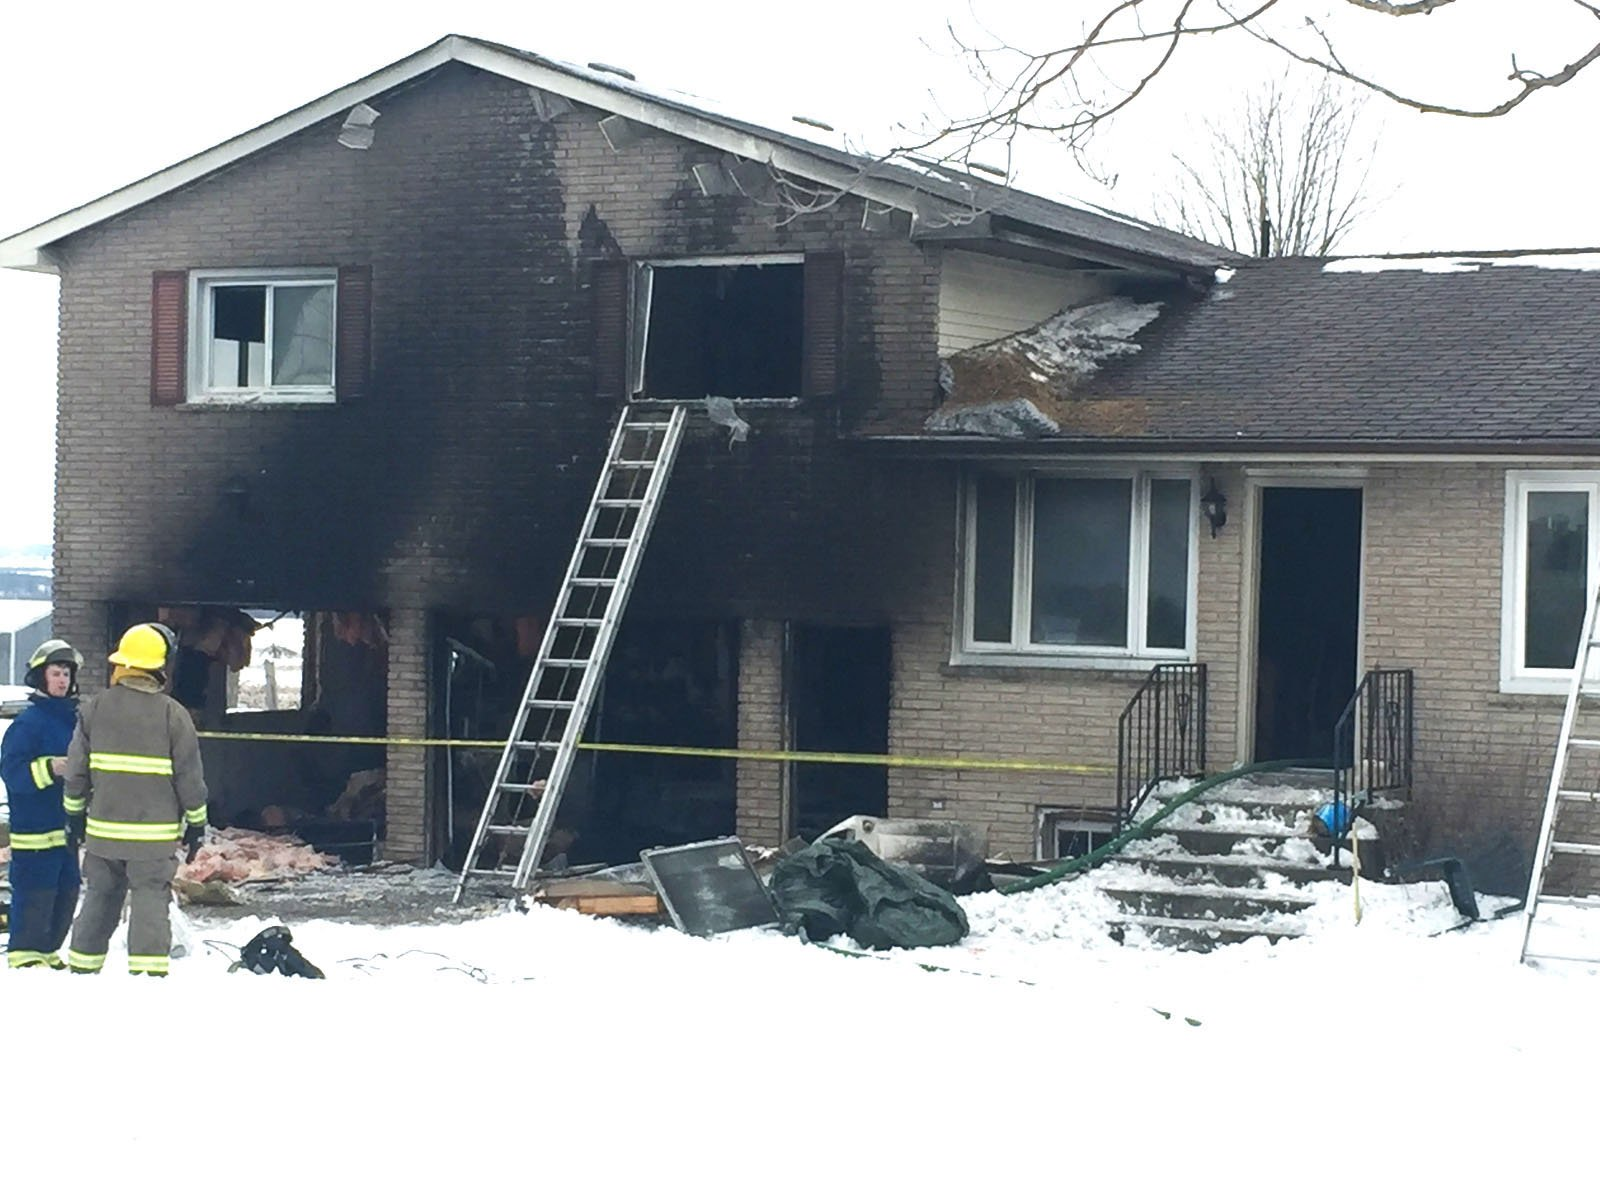 A home damaged by fire